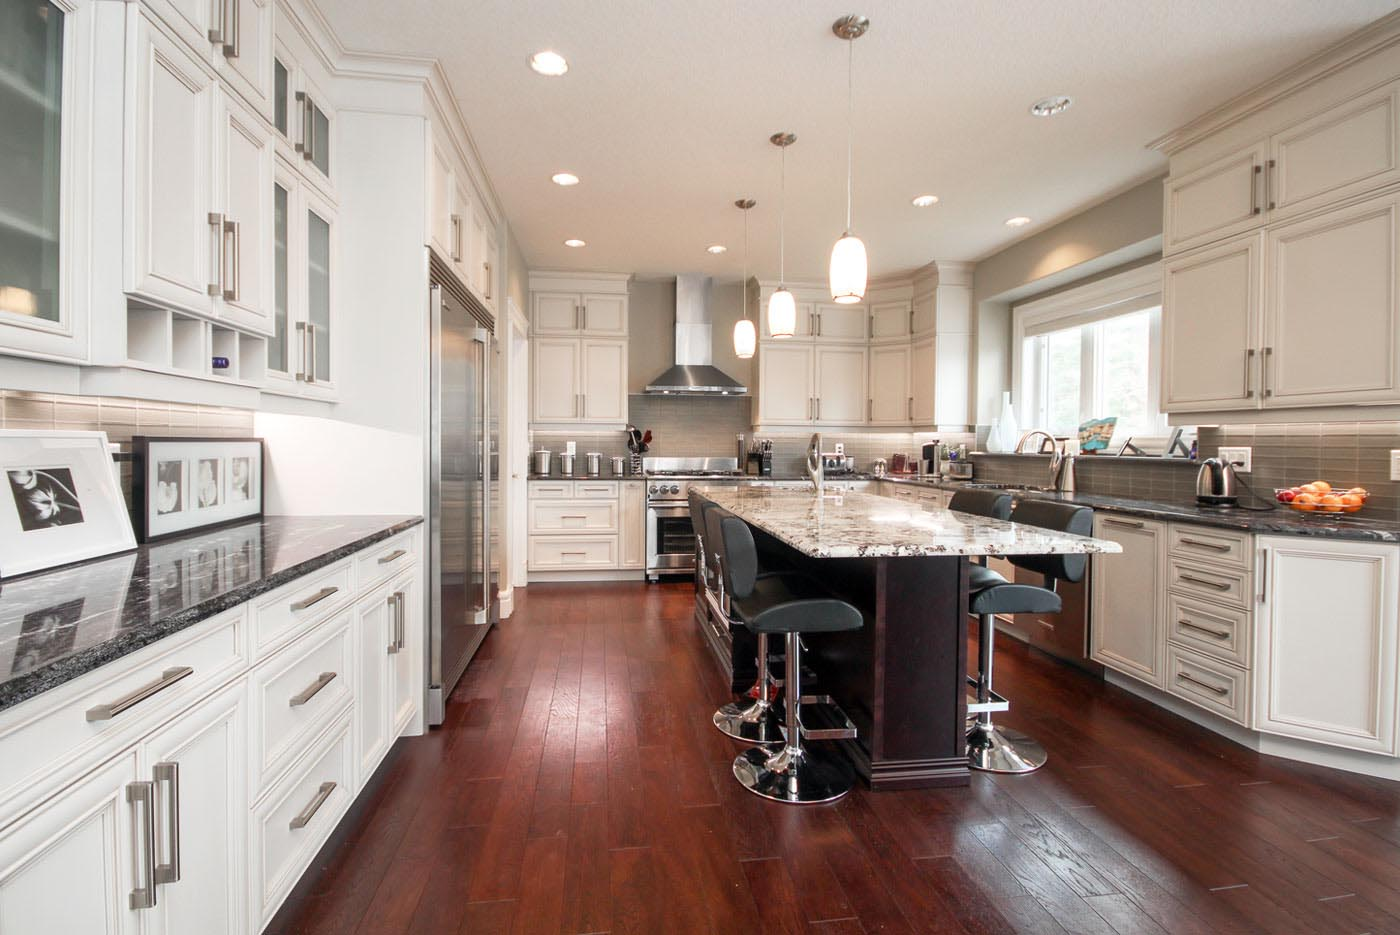 Contemporary two toned kitchen featuring painted white maple and dark French roast stained cabinetry on maple, granite countertops, auburn hardwood floor, stacked uppers, stainless steel hood fan, available at Superior Cabinets.